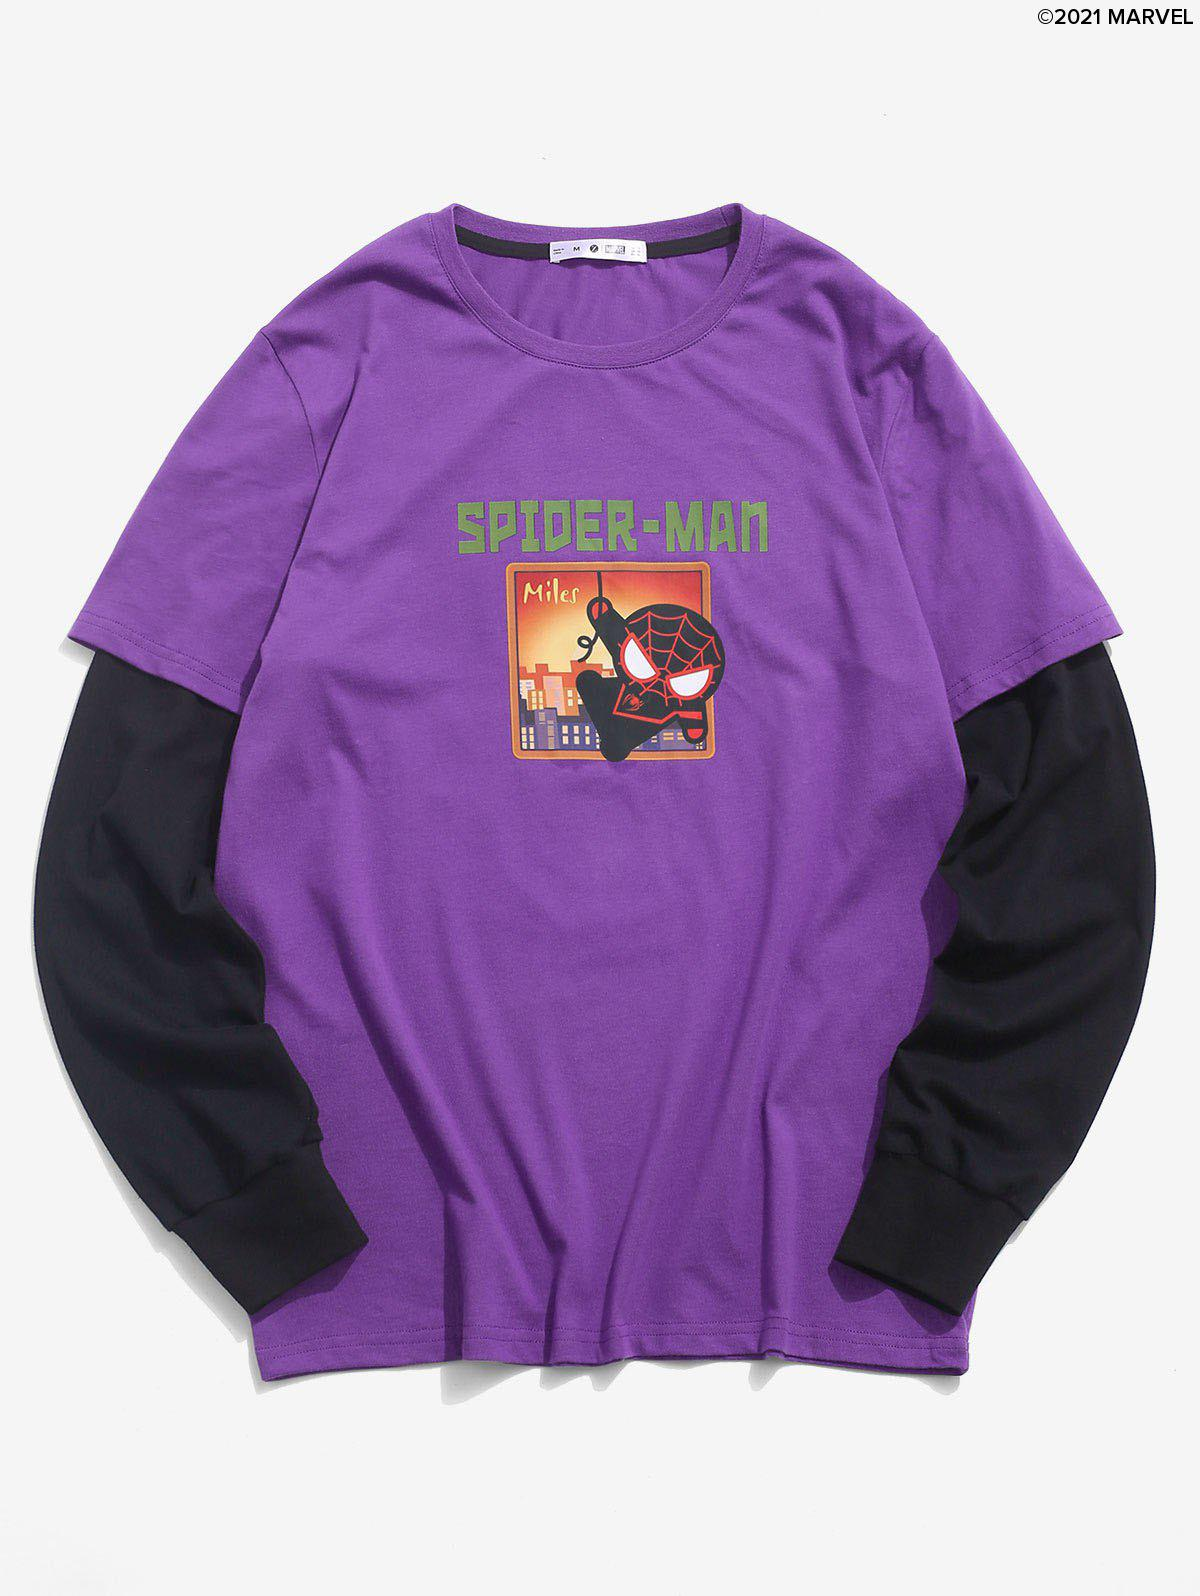 Affordable Marvel Spider-Man Graphic Doctor Sleeve T-shirt